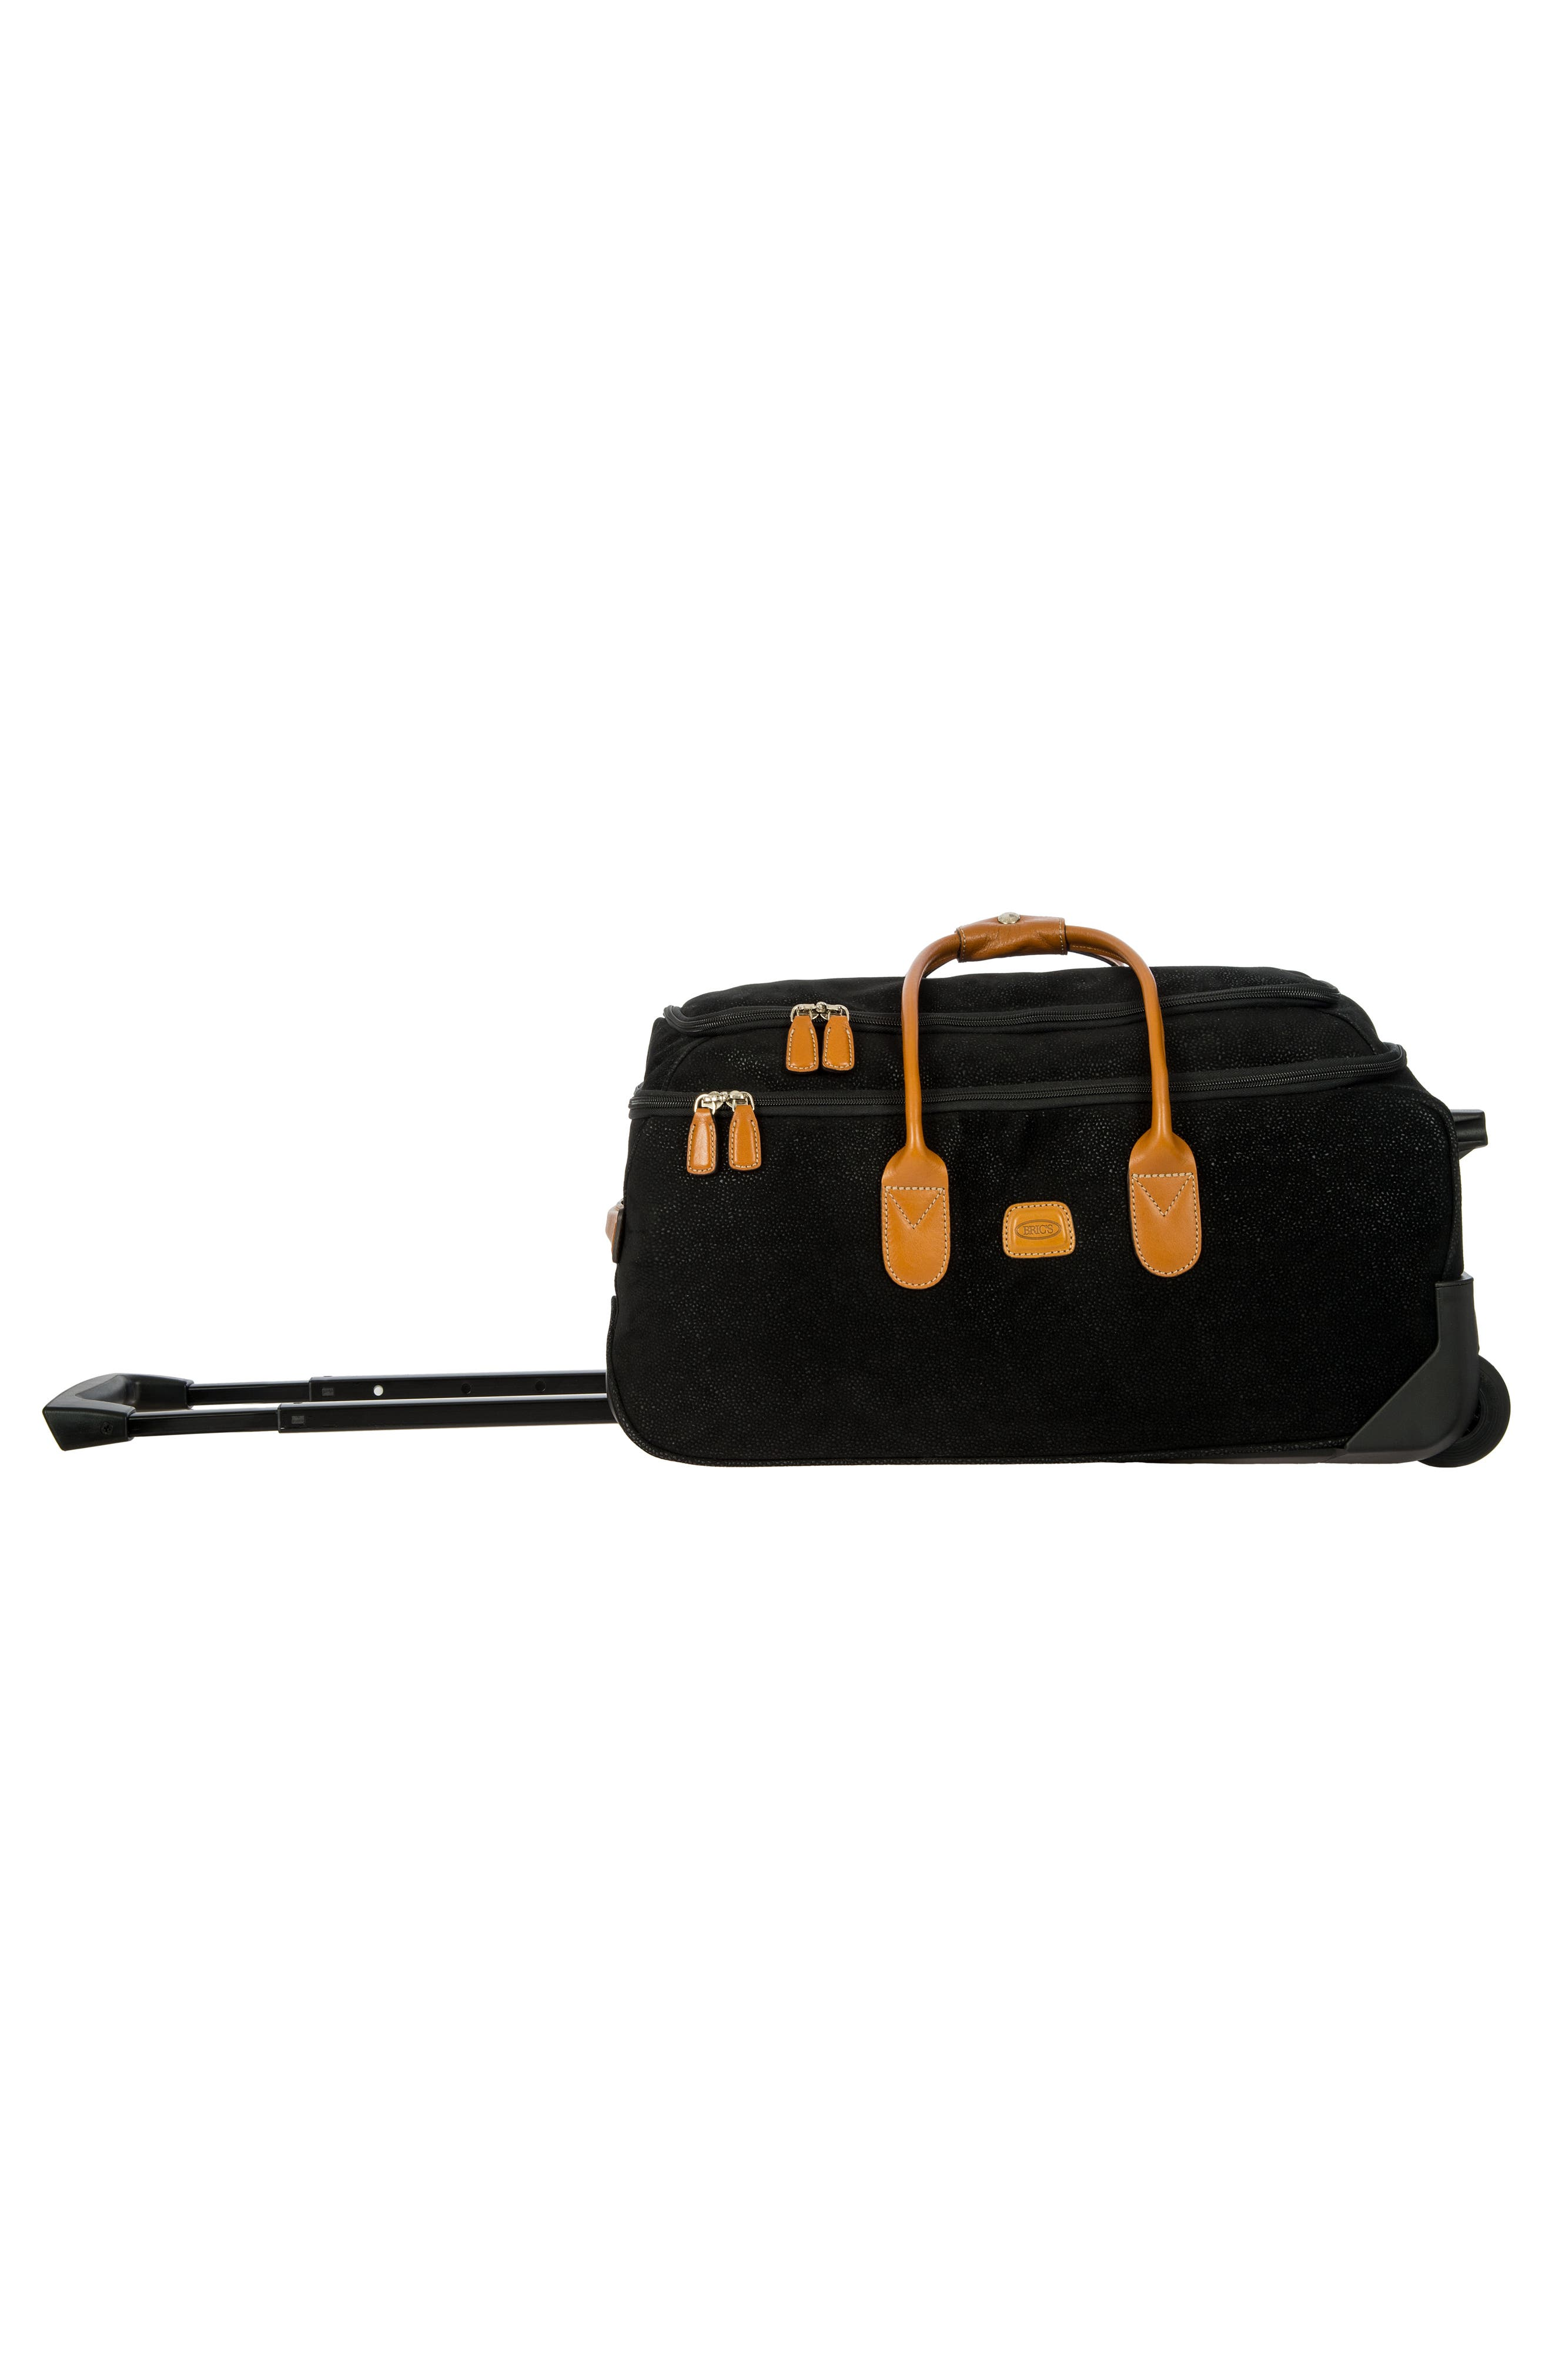 Life Collection 21-Inch Rolling Duffel Bag,                             Alternate thumbnail 7, color,                             Black